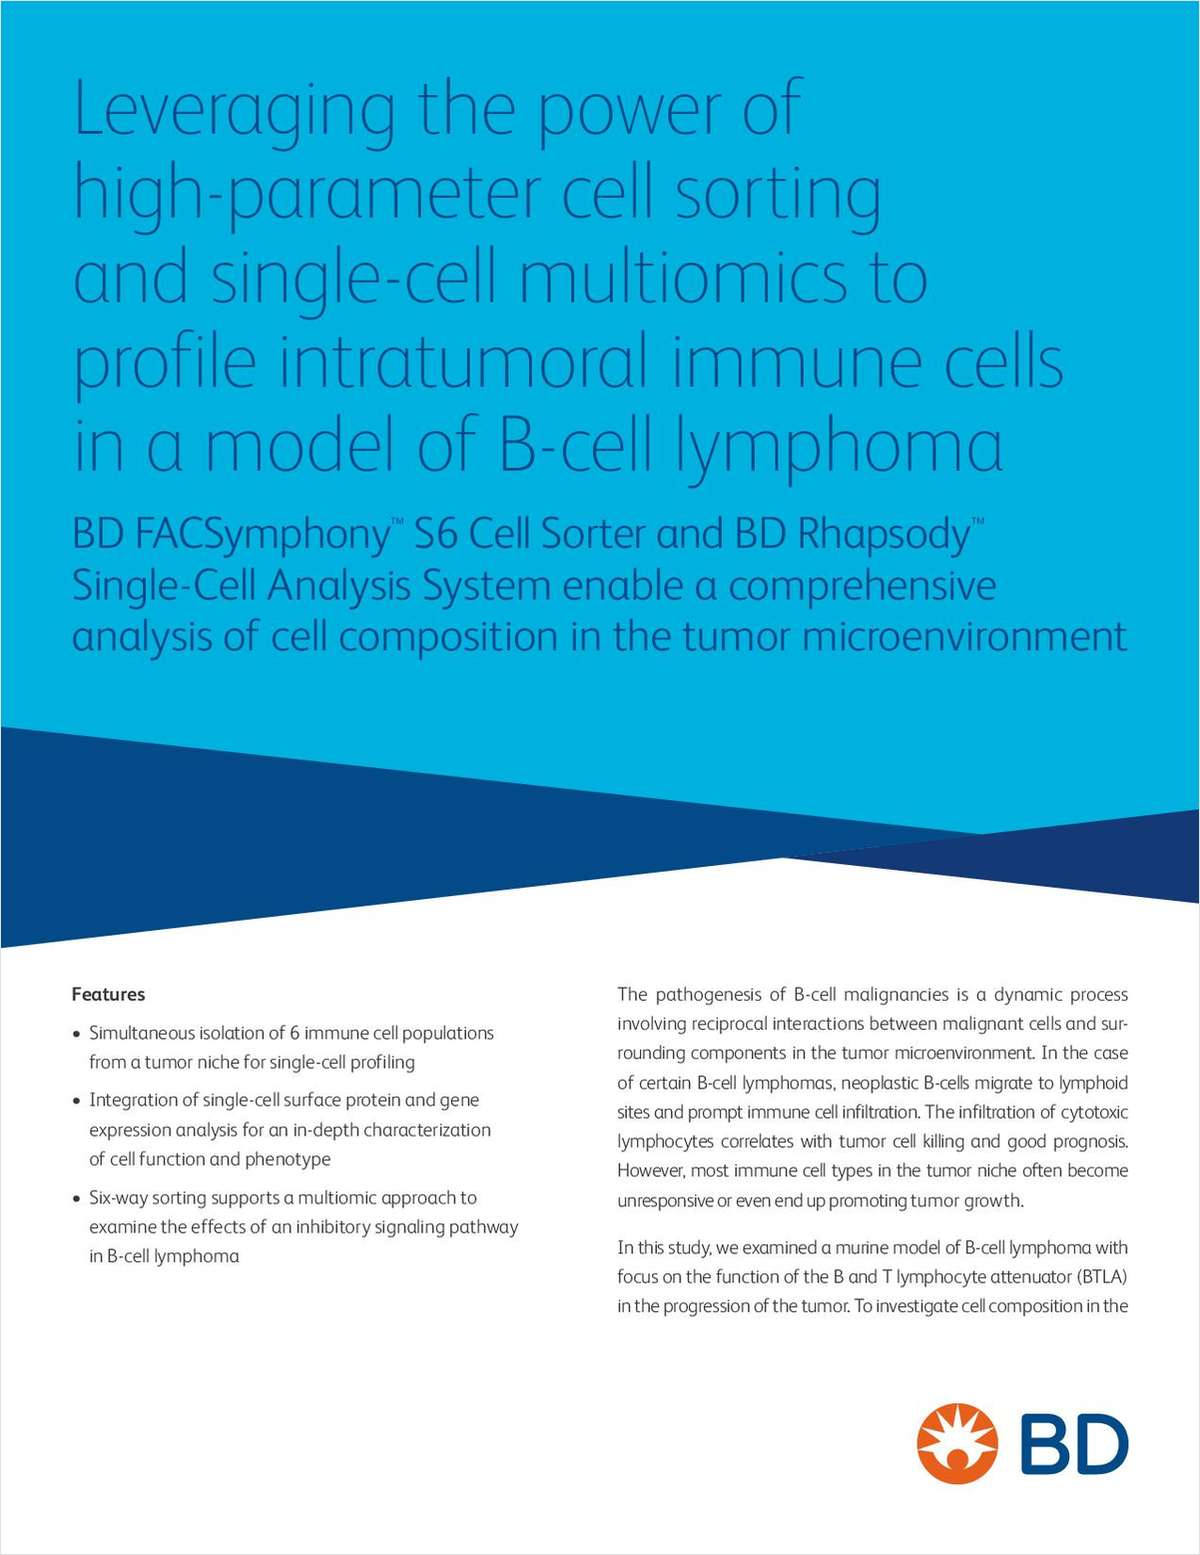 Leveraging the Power of High-Parameter Cell Sorting and Single-Cell Multiomics to Profile Intratumoral Immune Cells in a Model of B-Cell Lymphoma